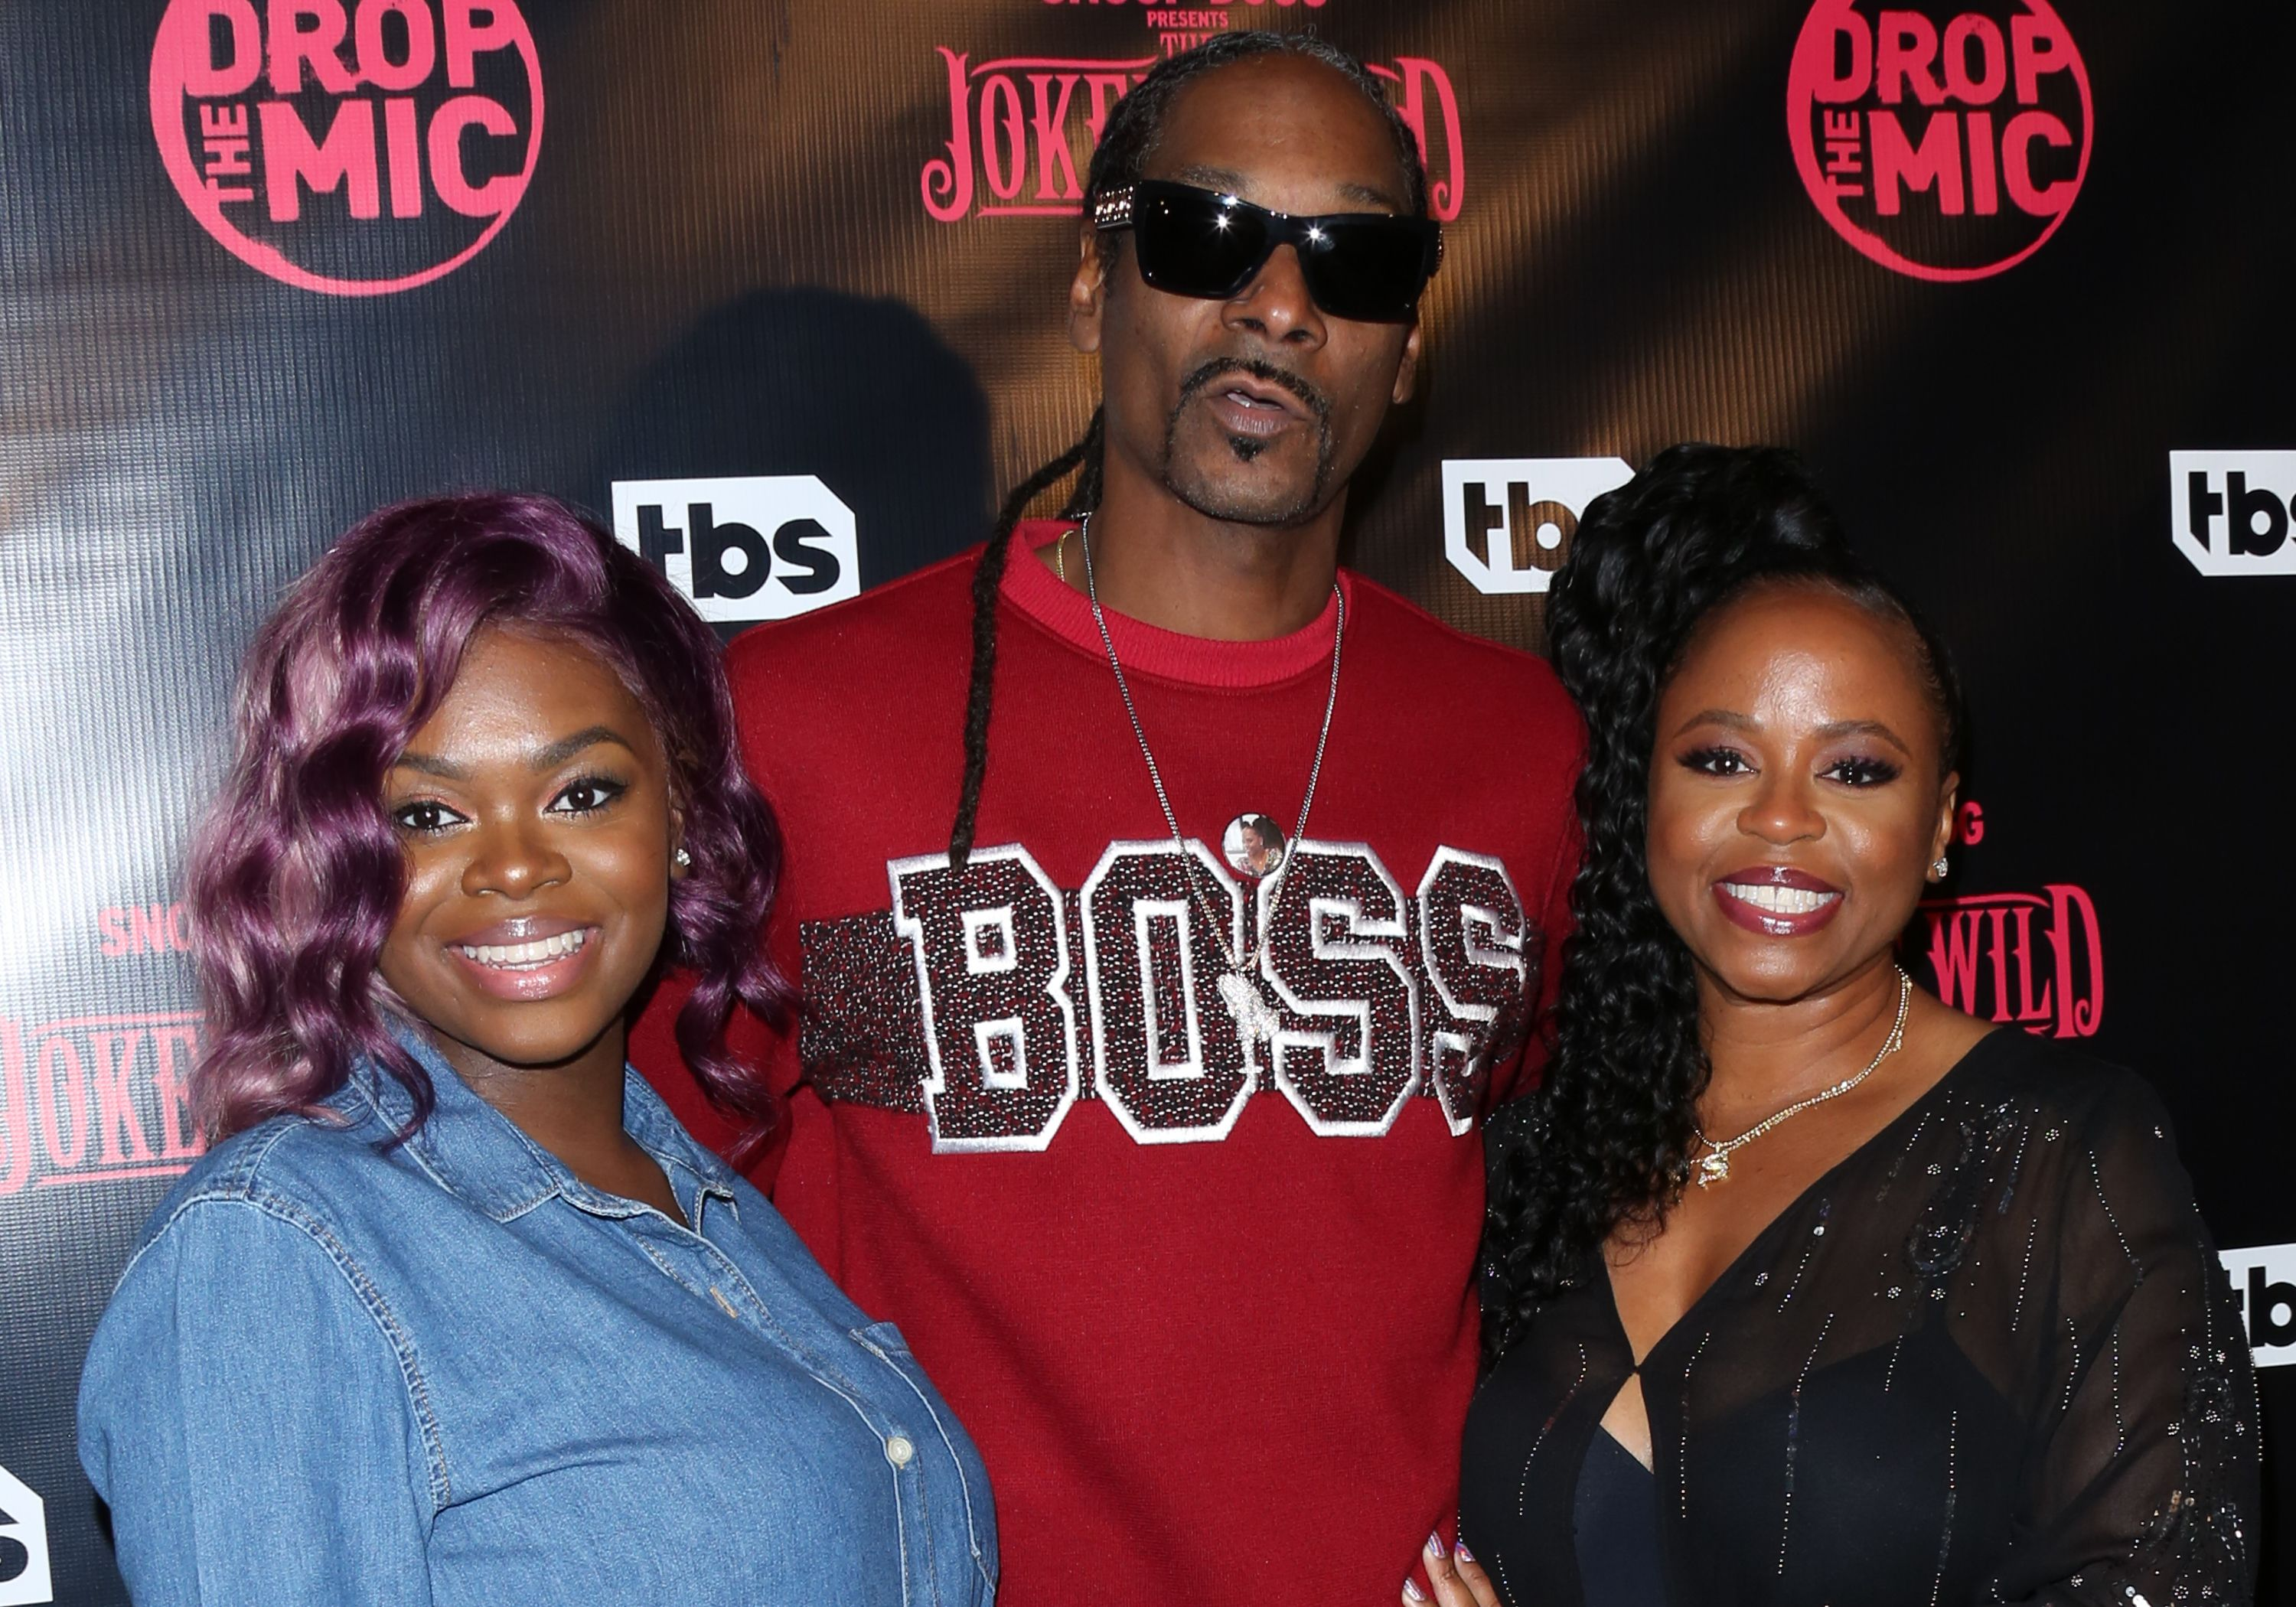 """Cori Broadus, Snoop Dogg and Shante Broadus at the premiere for TBS's """"Drop The Mic"""" in 2017 in Los Angeles   Source: Getty Images"""